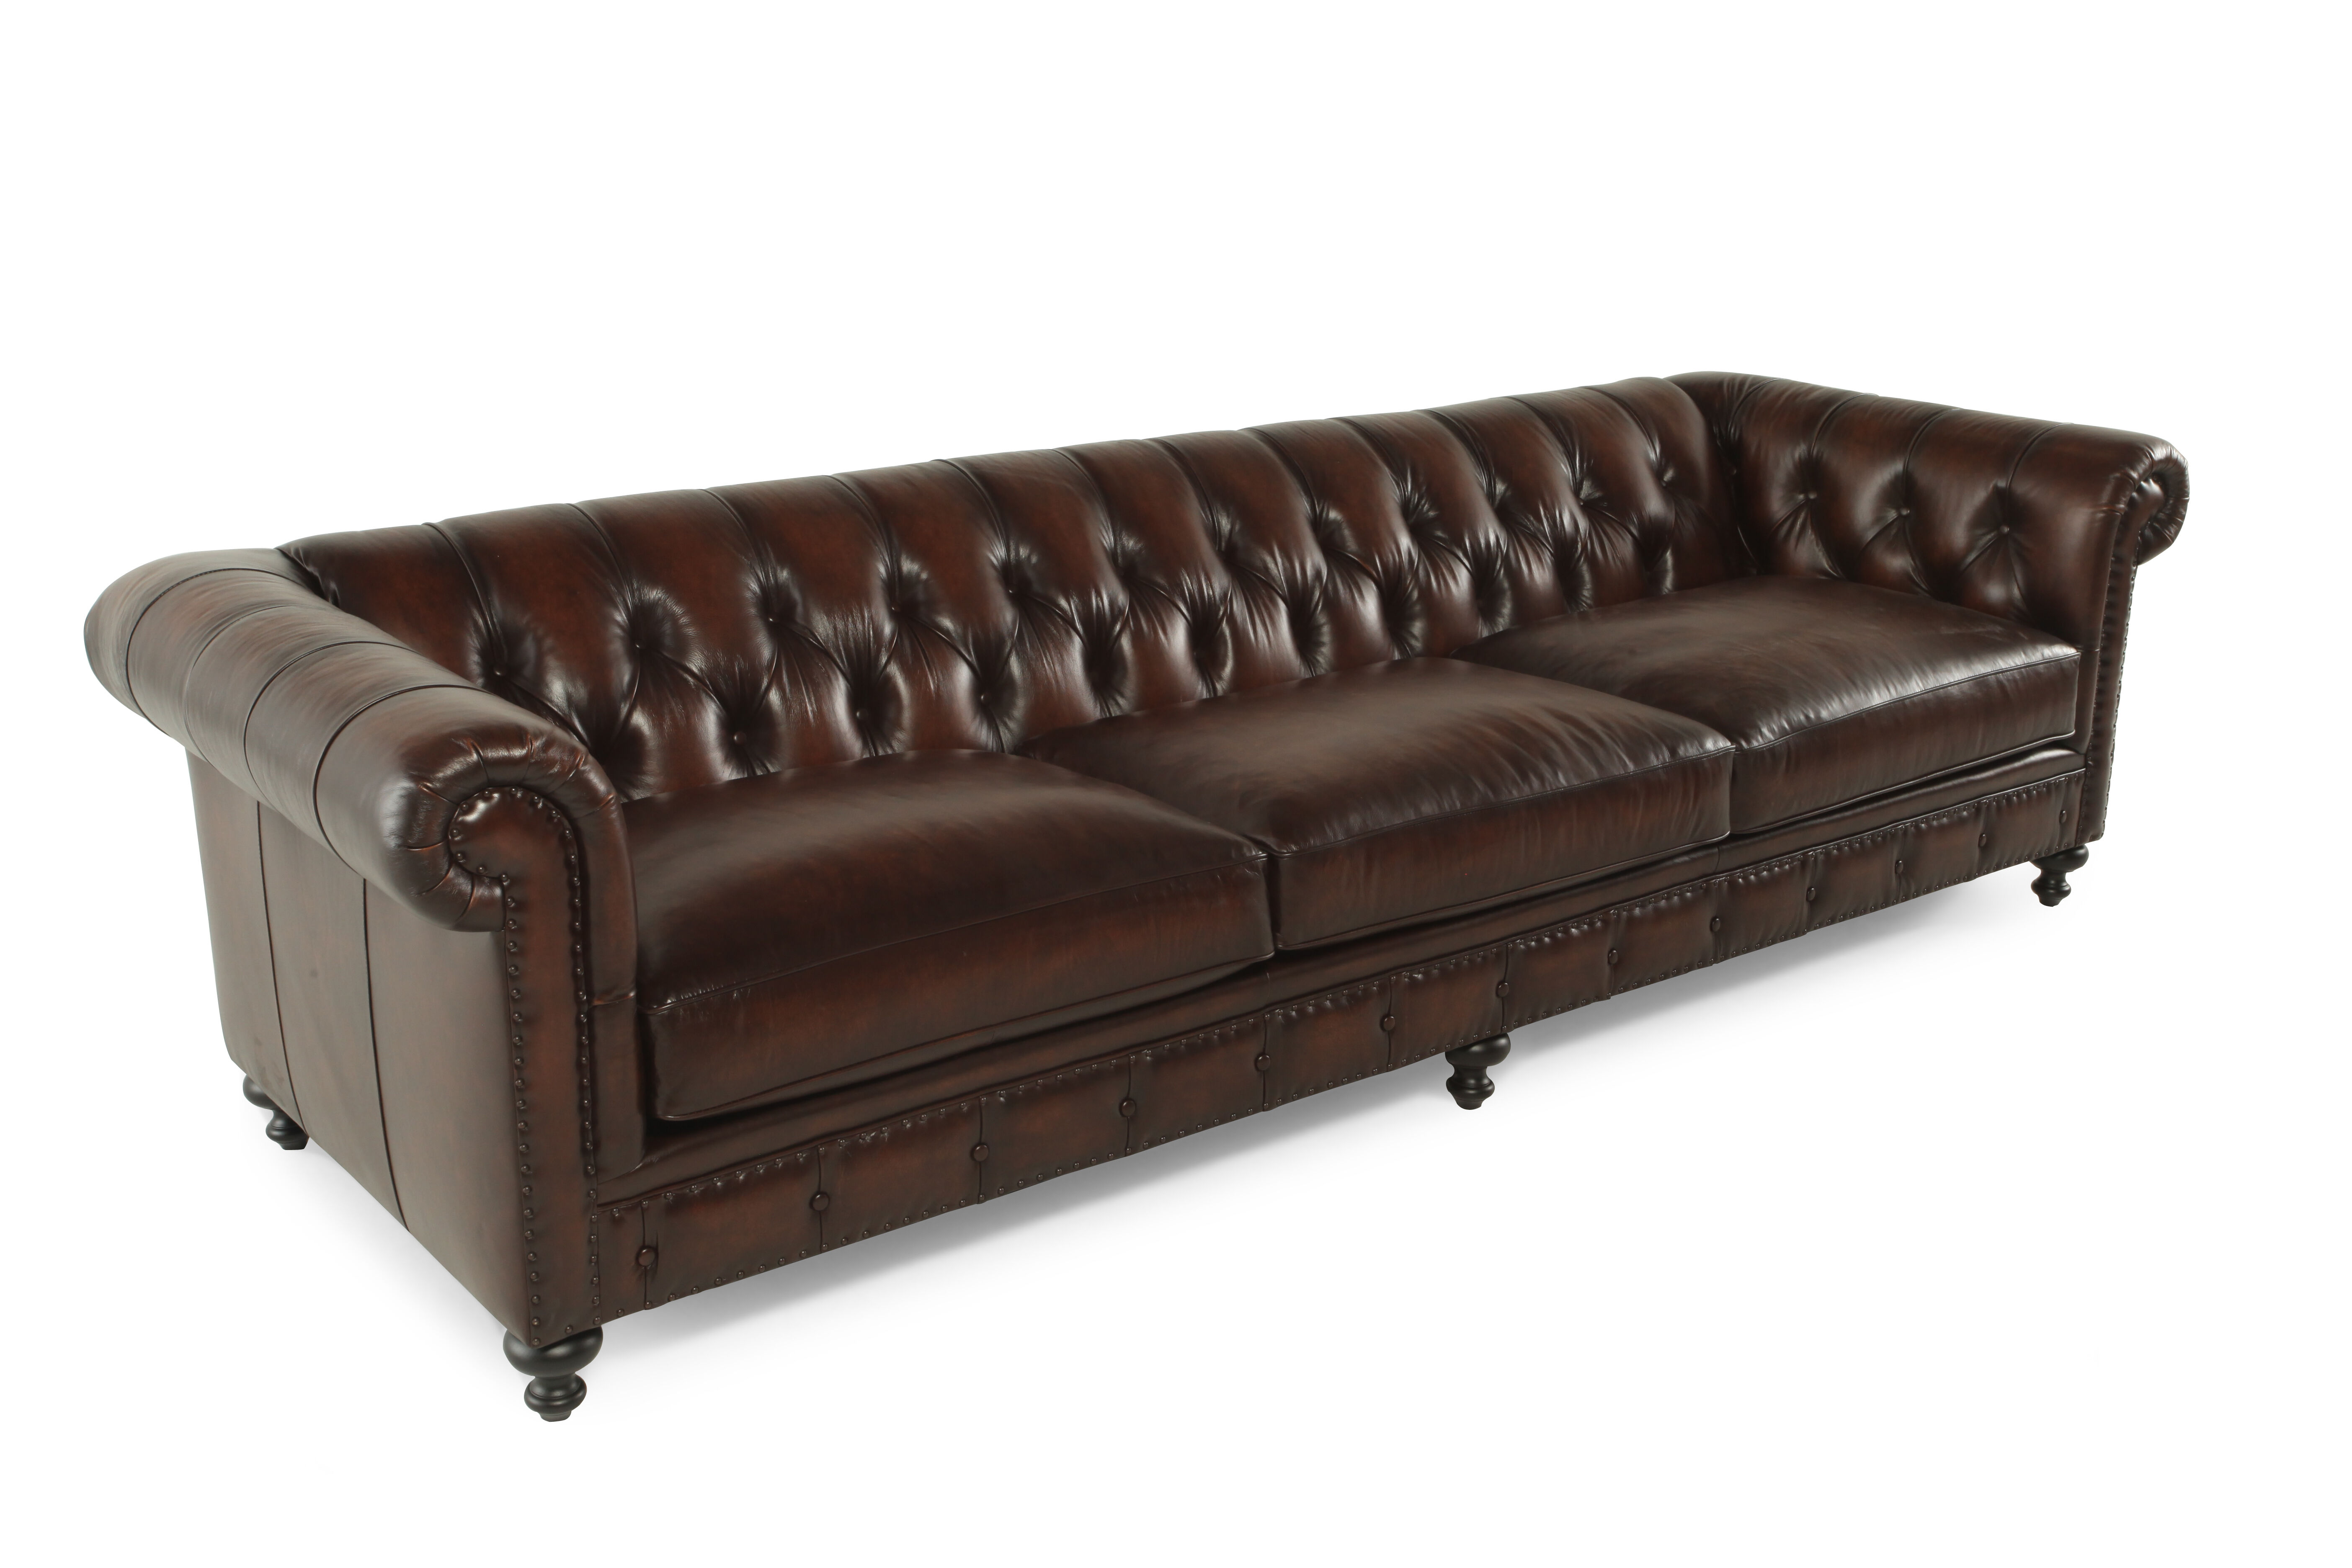 tufted button sofa oak feet leather 116 5 quot in molasses mathis